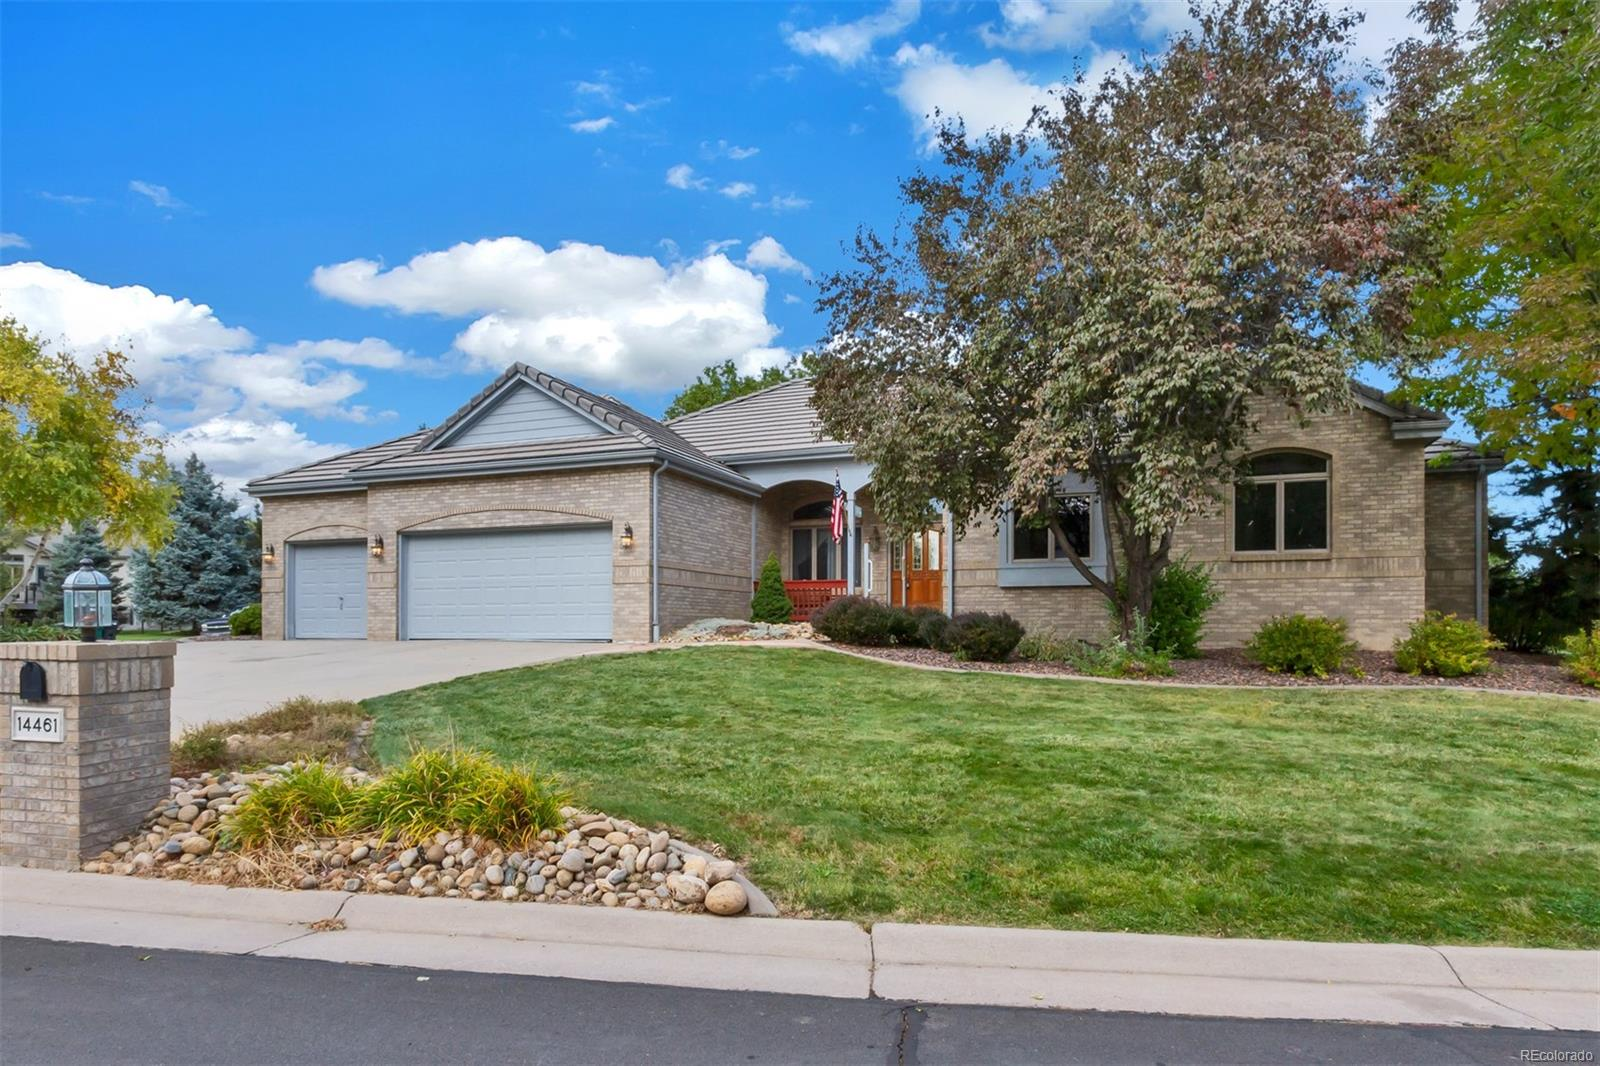 14461 W 56th Place, Arvada, CO 80002 - Arvada, CO real estate listing